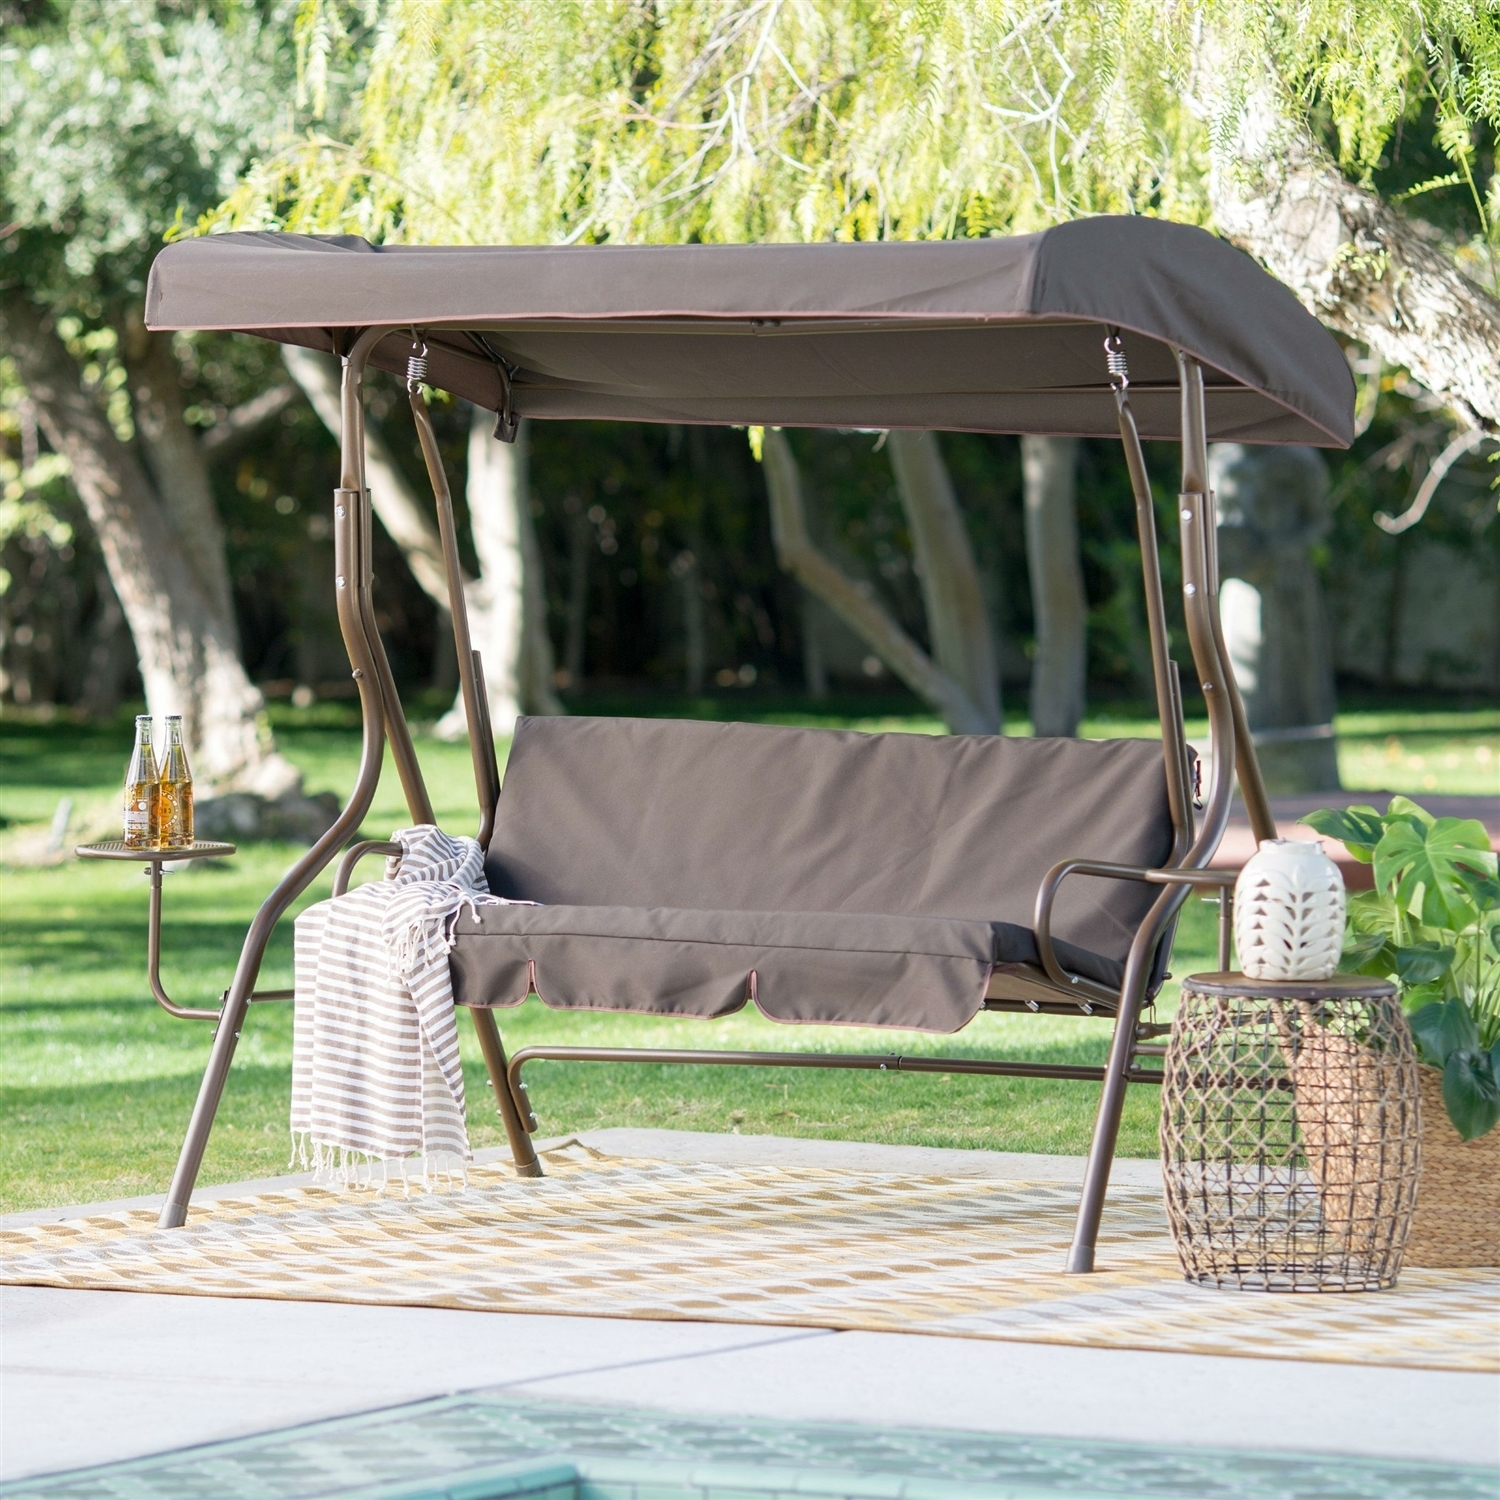 Outdoor Patio 2 Person Porch Swing With Adjustable Tilt Canopy And